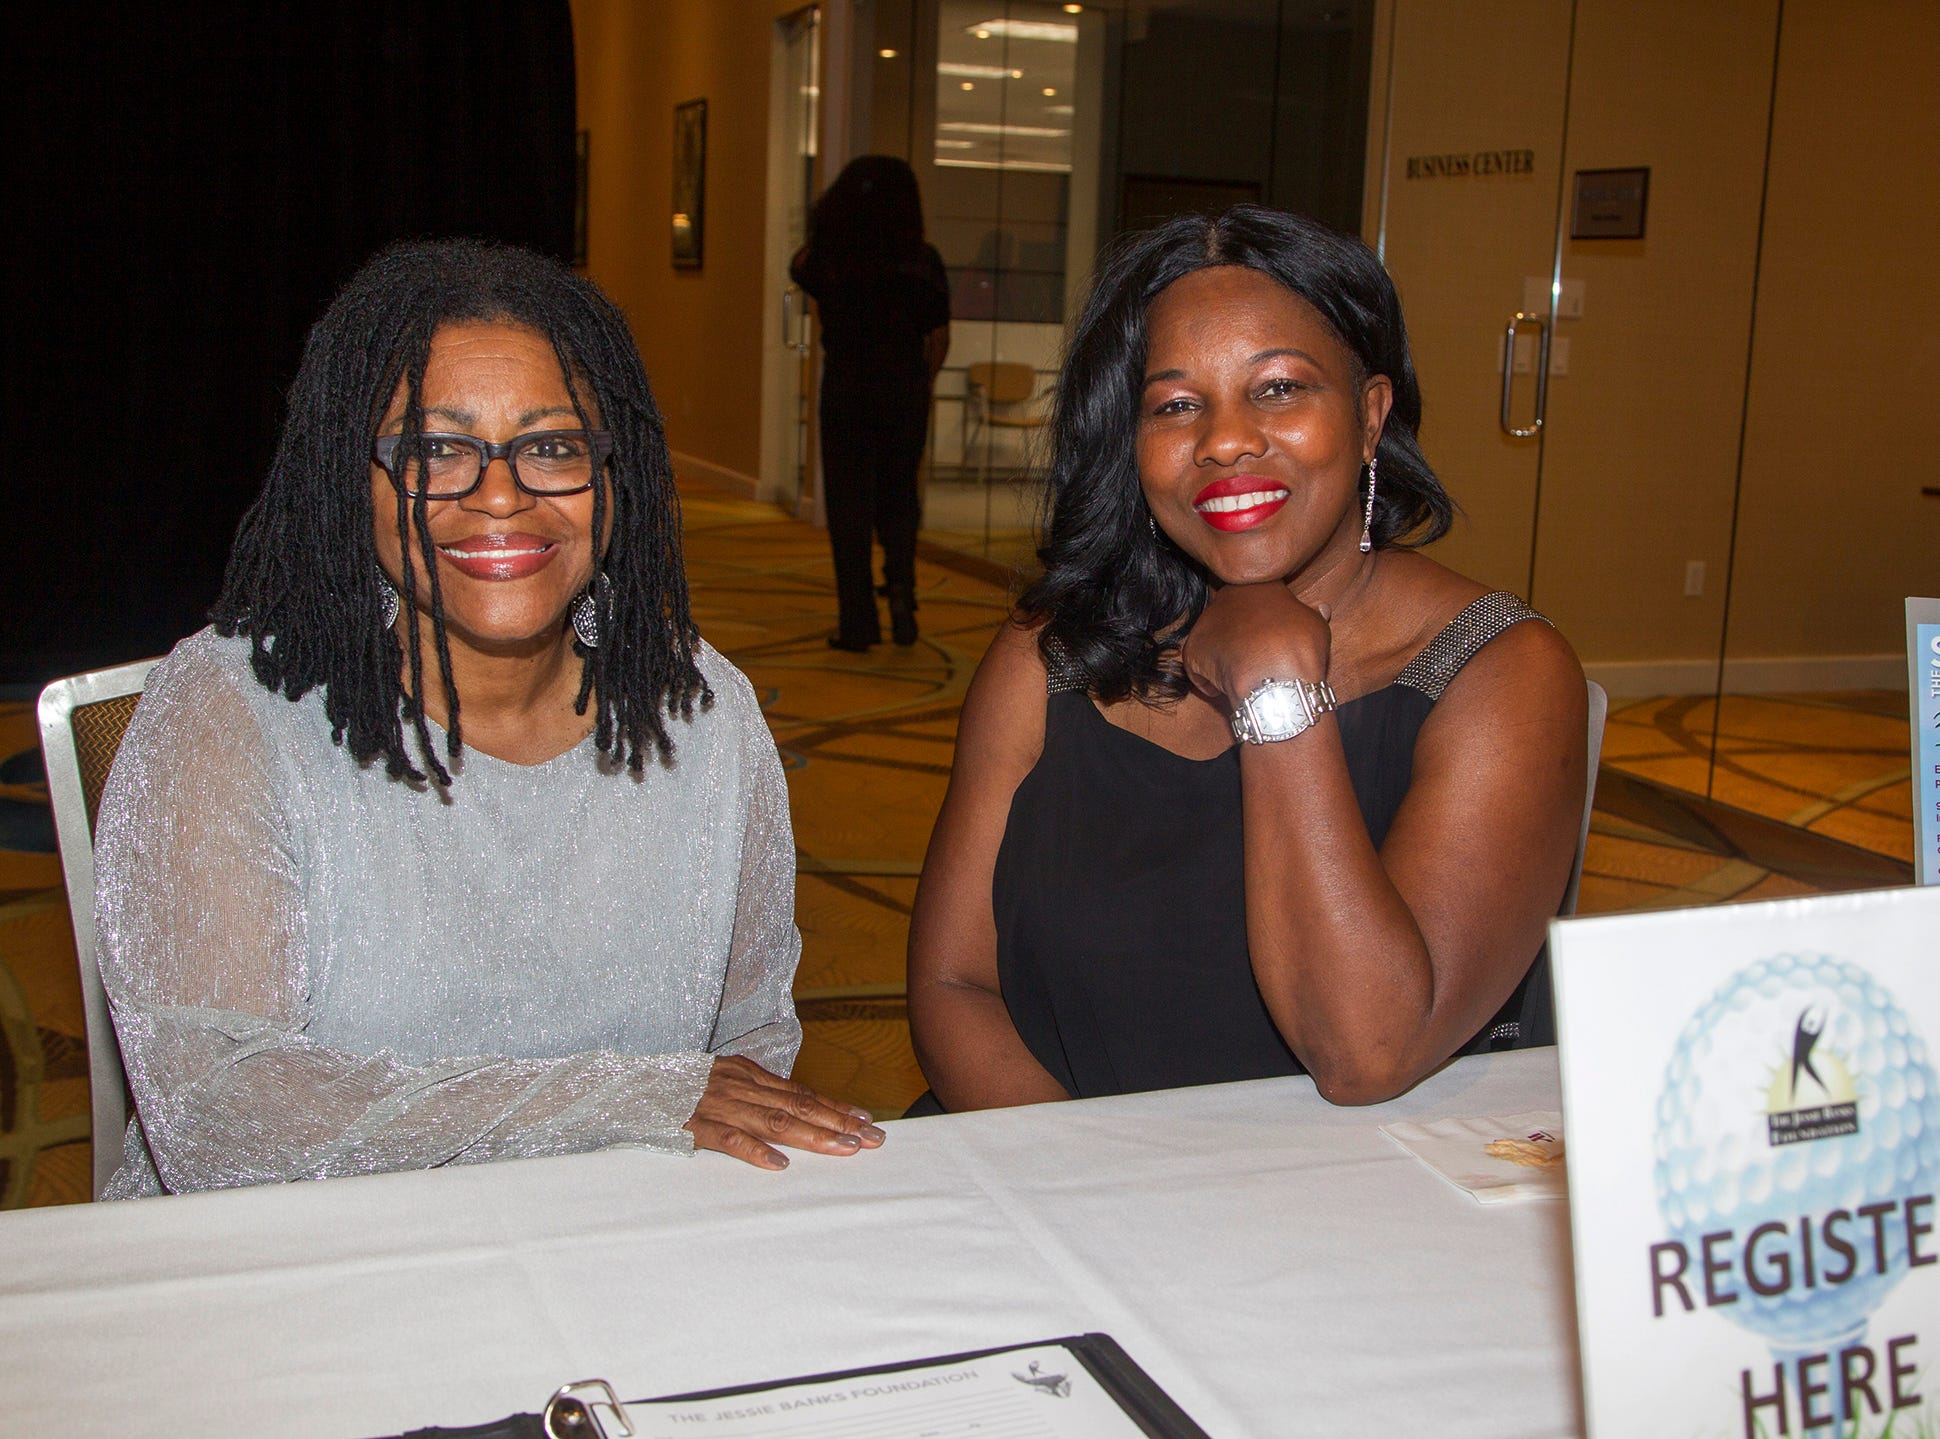 Denise Dixon, Cynthia Patterson. Jessie Banks Foundation holds 16th annual Scholarship Awards Gala in Teaneck. 11/09/2018